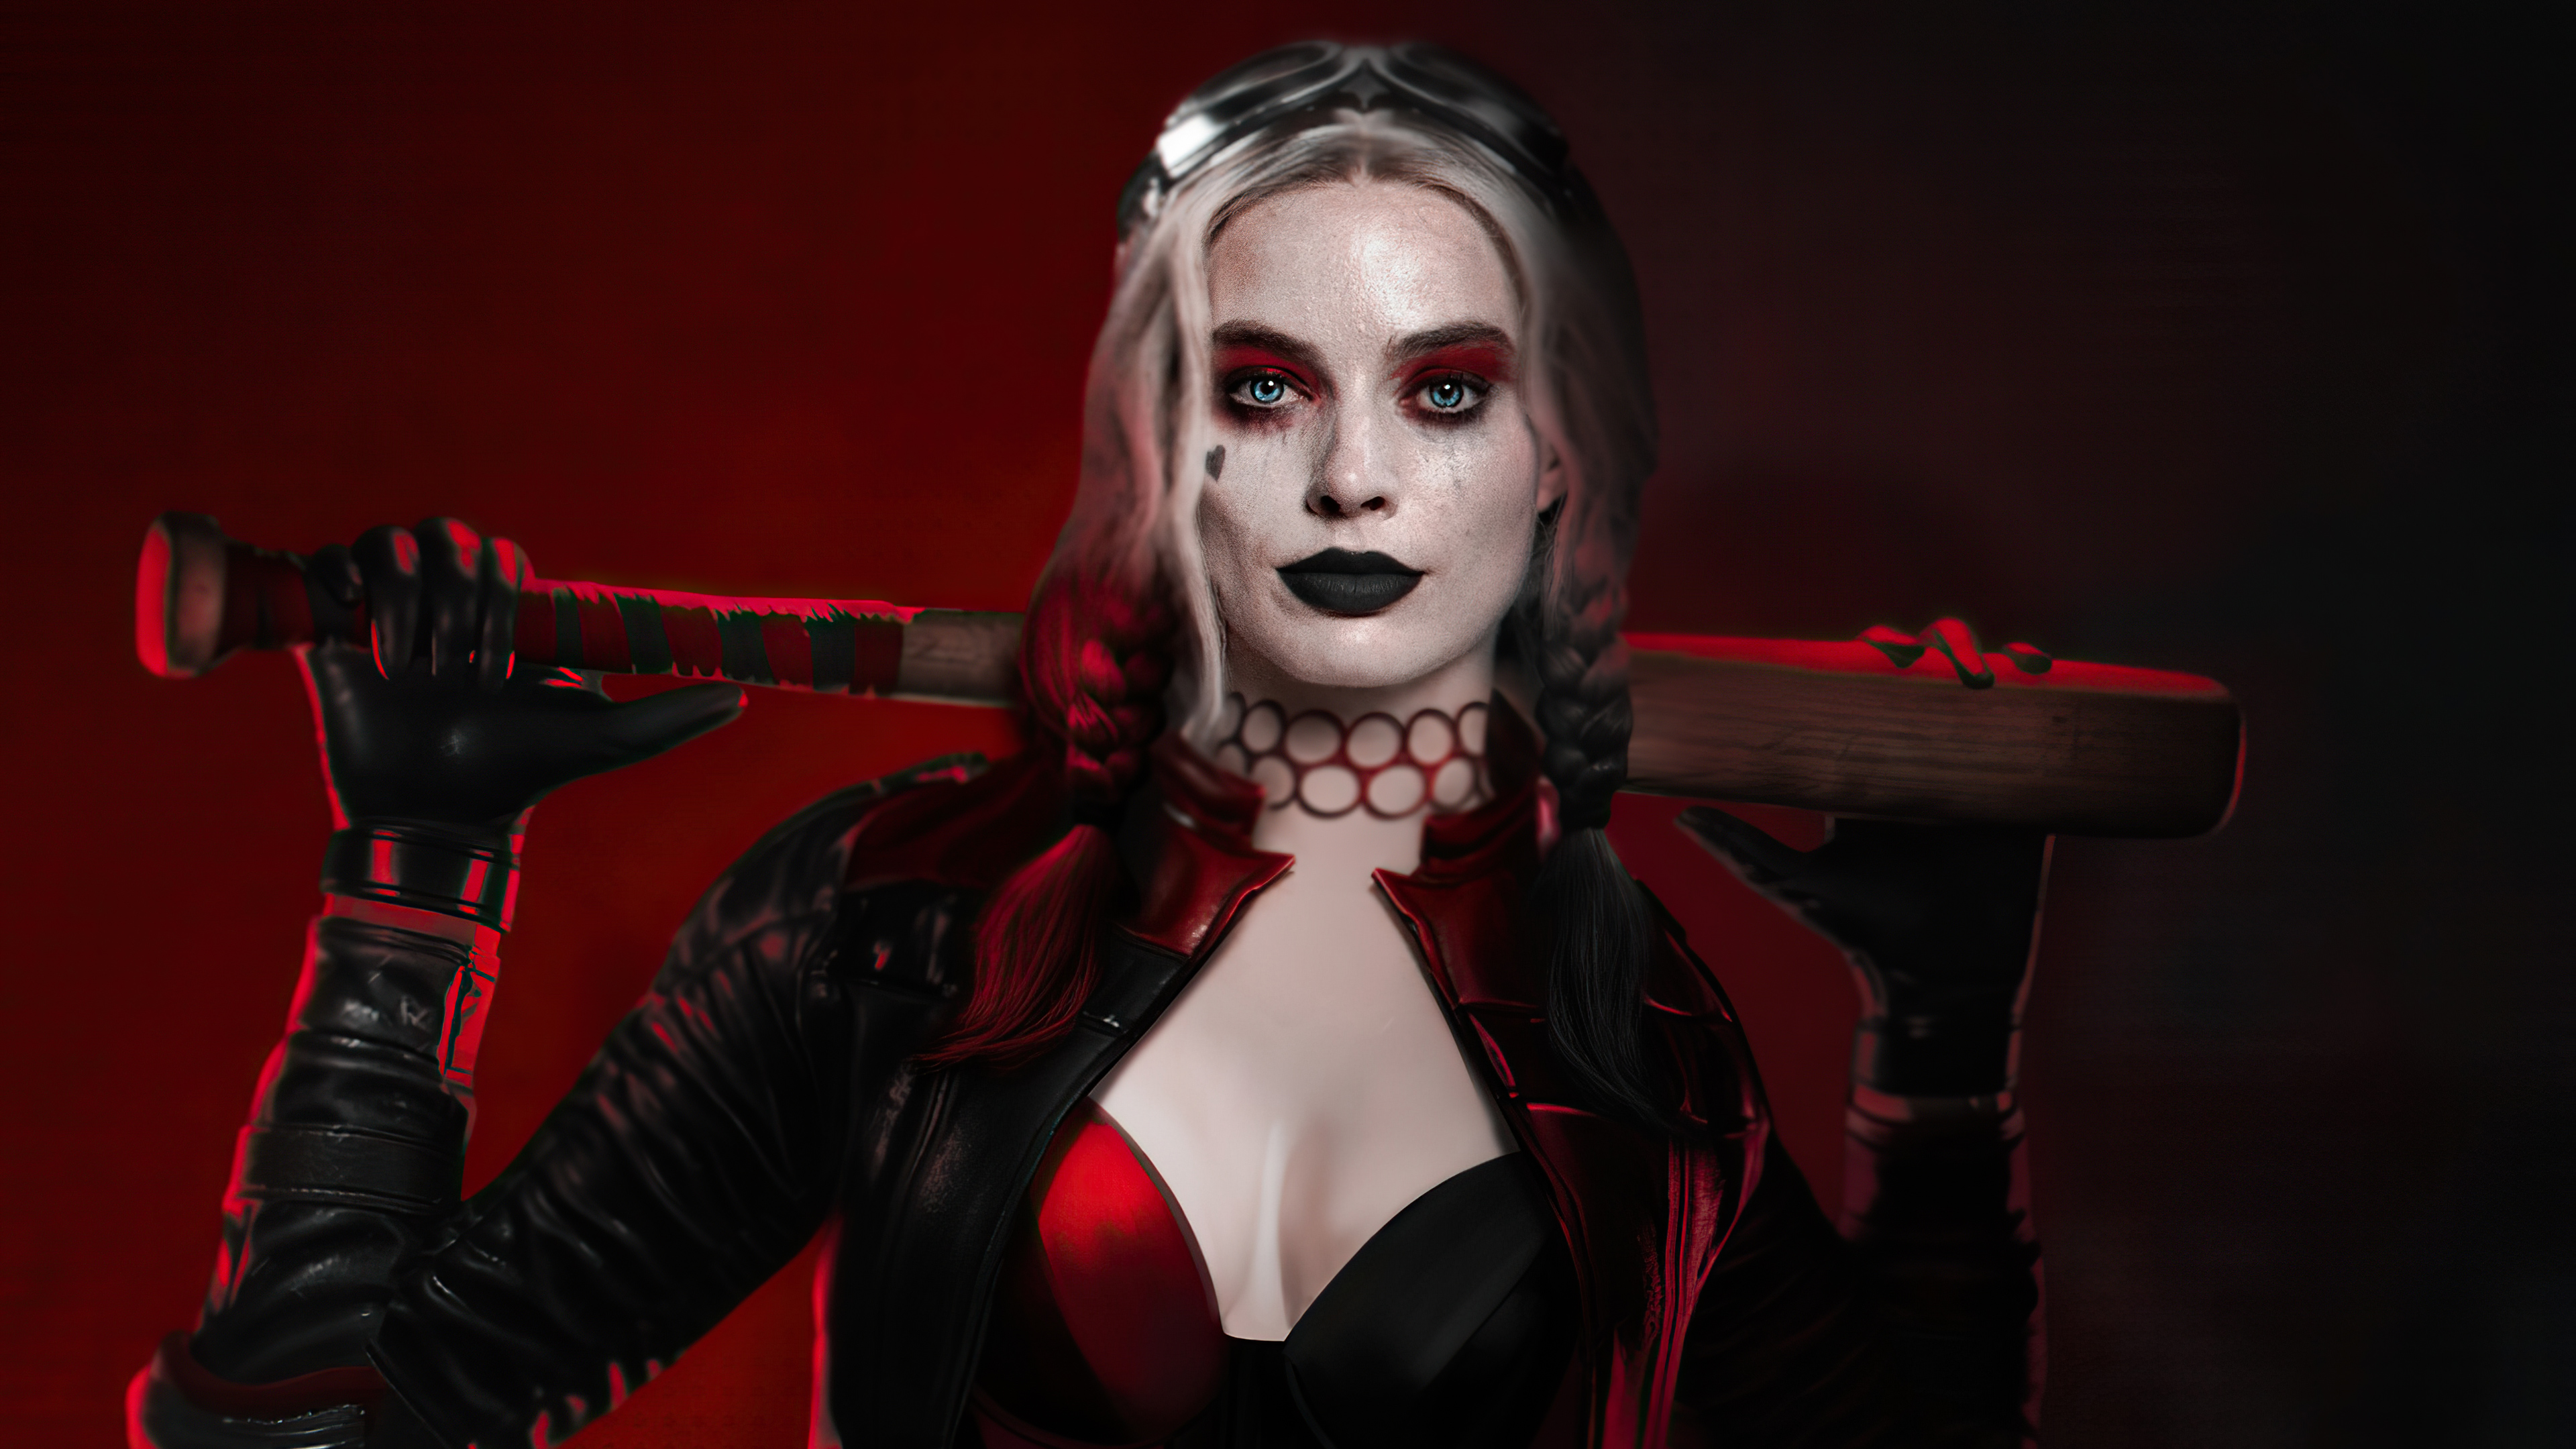 Wallpaper Harley Quinn from Suicide Squad